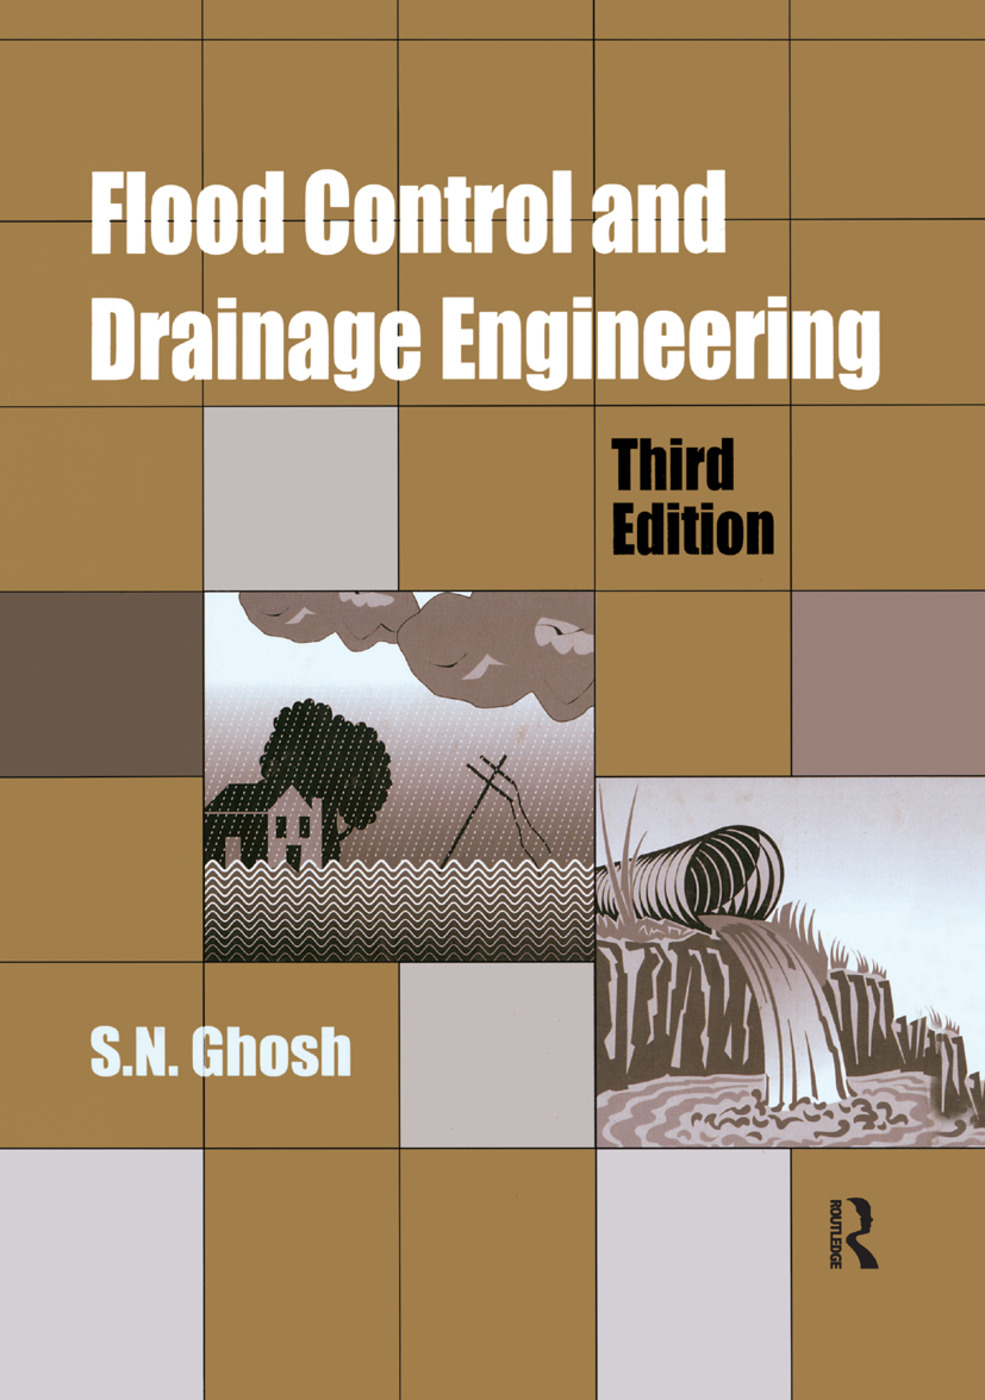 Flood Control and Drainage Engineering, 3rd edition: 3rd Edition (Paperback) book cover